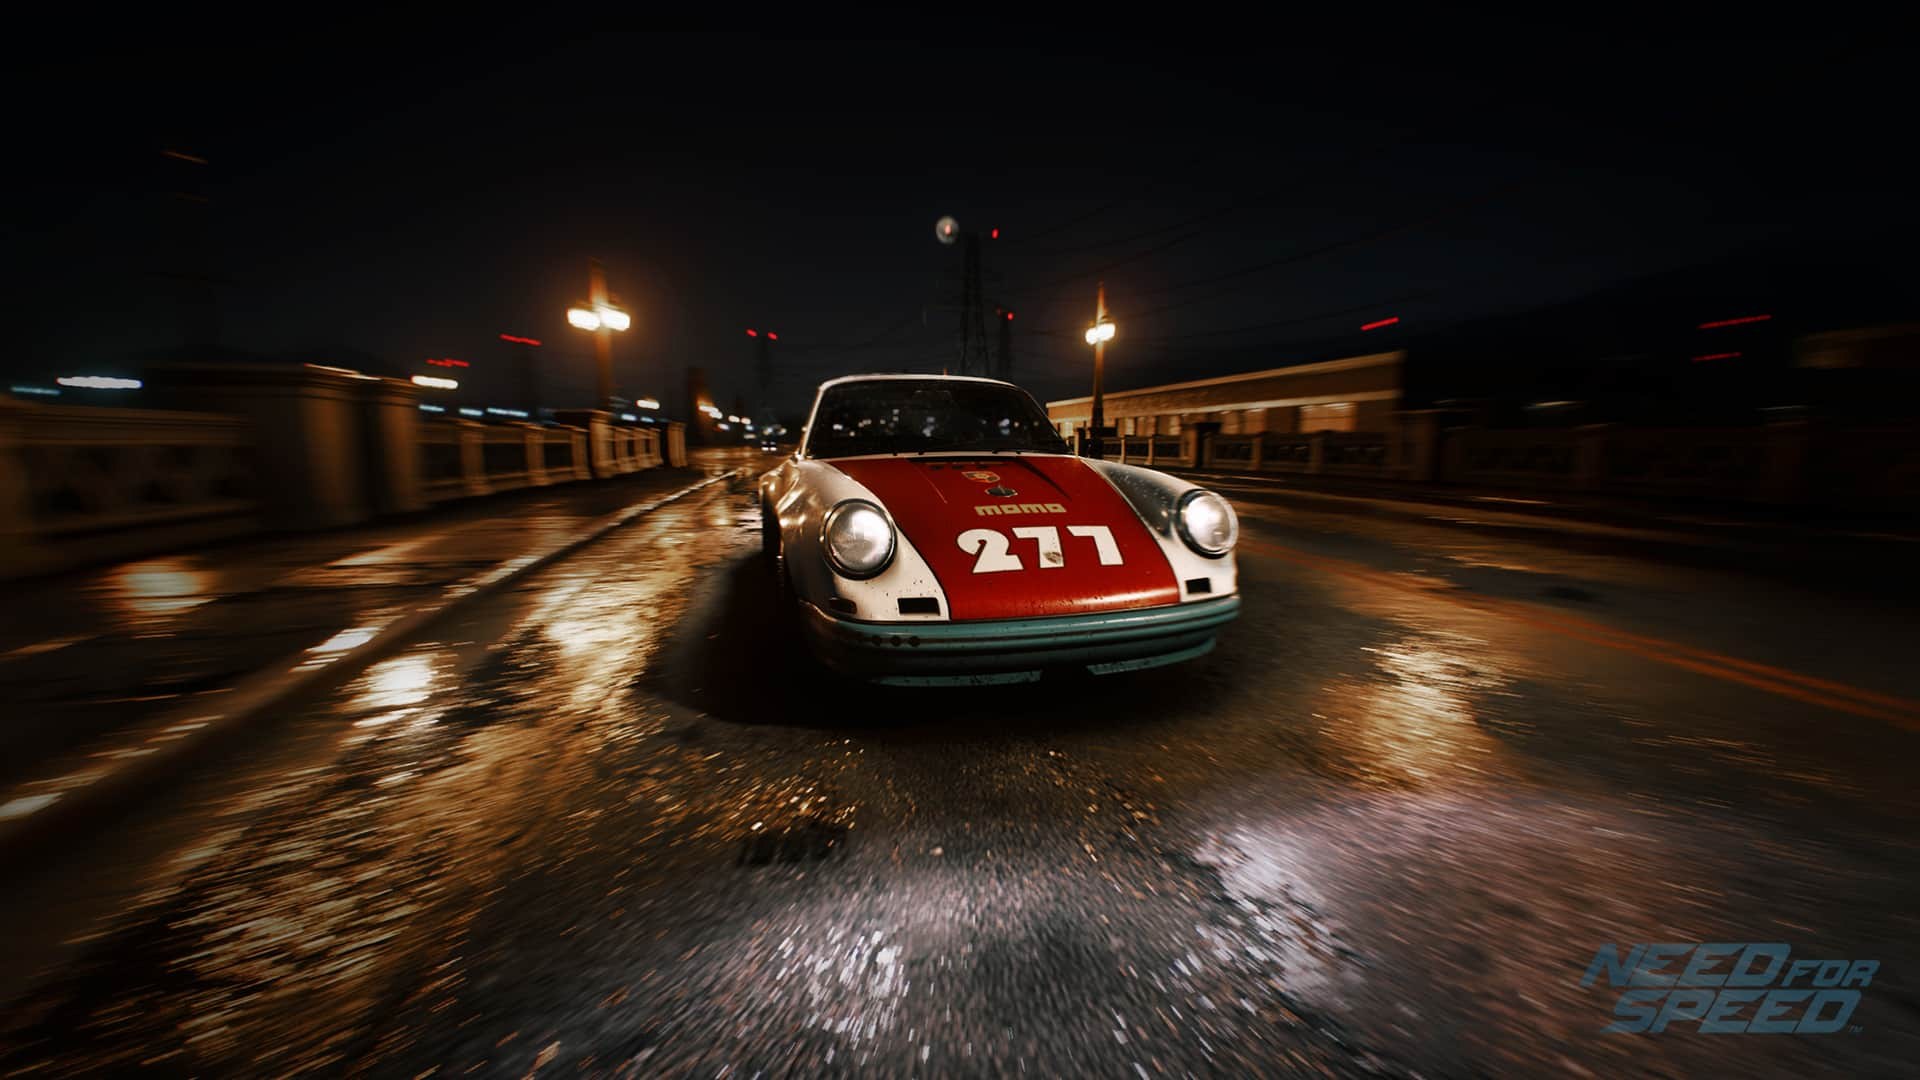 Need For Speed Free PC download - Install-Game